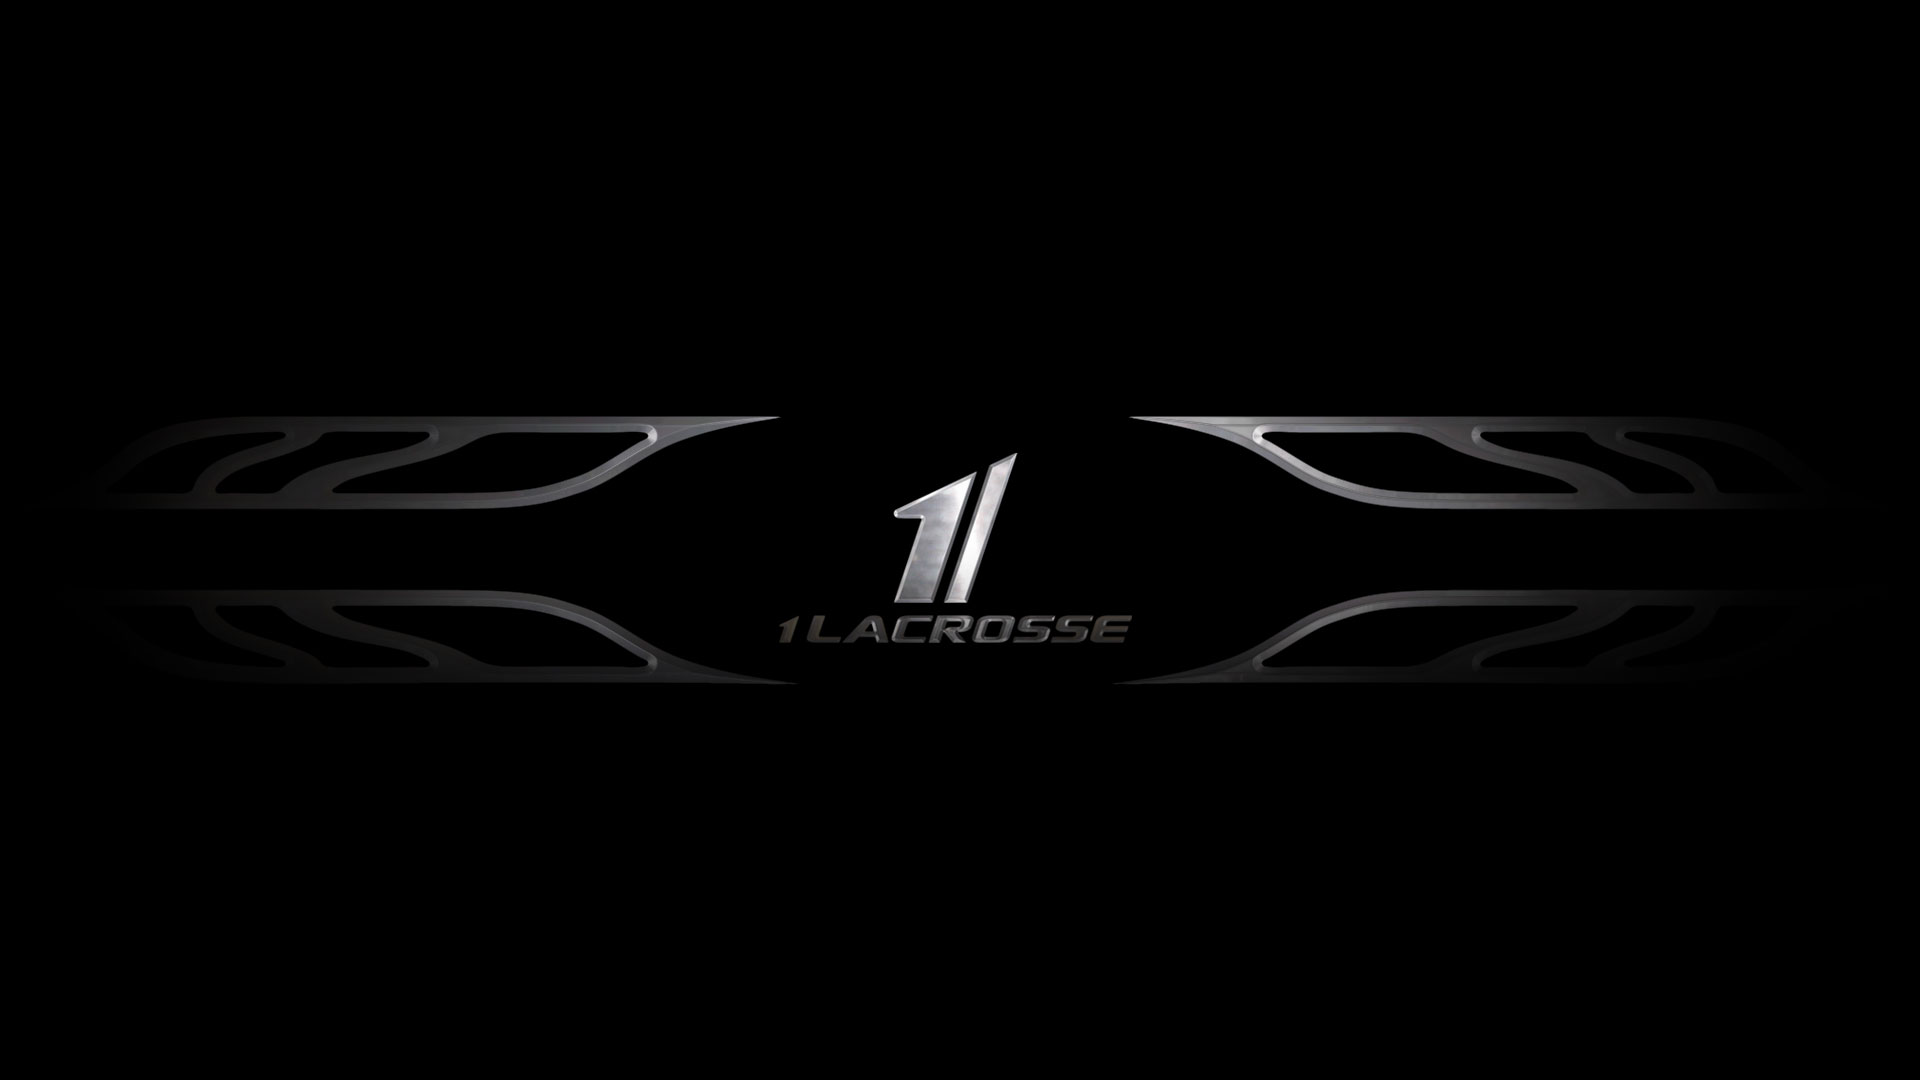 cool lacrosse wallpapers lax - photo #23